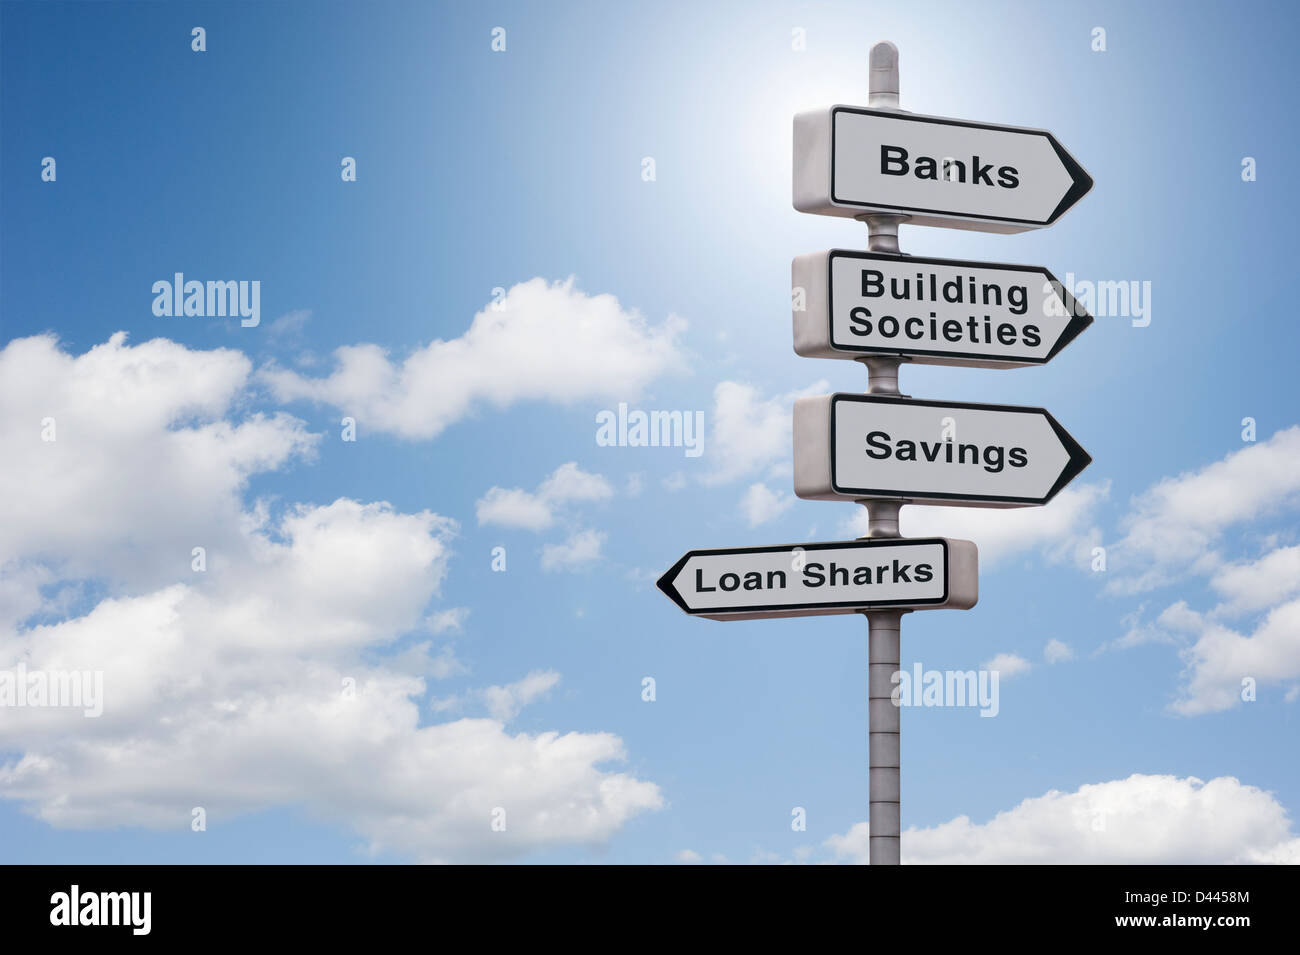 Sign with Banks, Building Societies, Savings pointing right and Loan Sharks pointing left - Stock Image